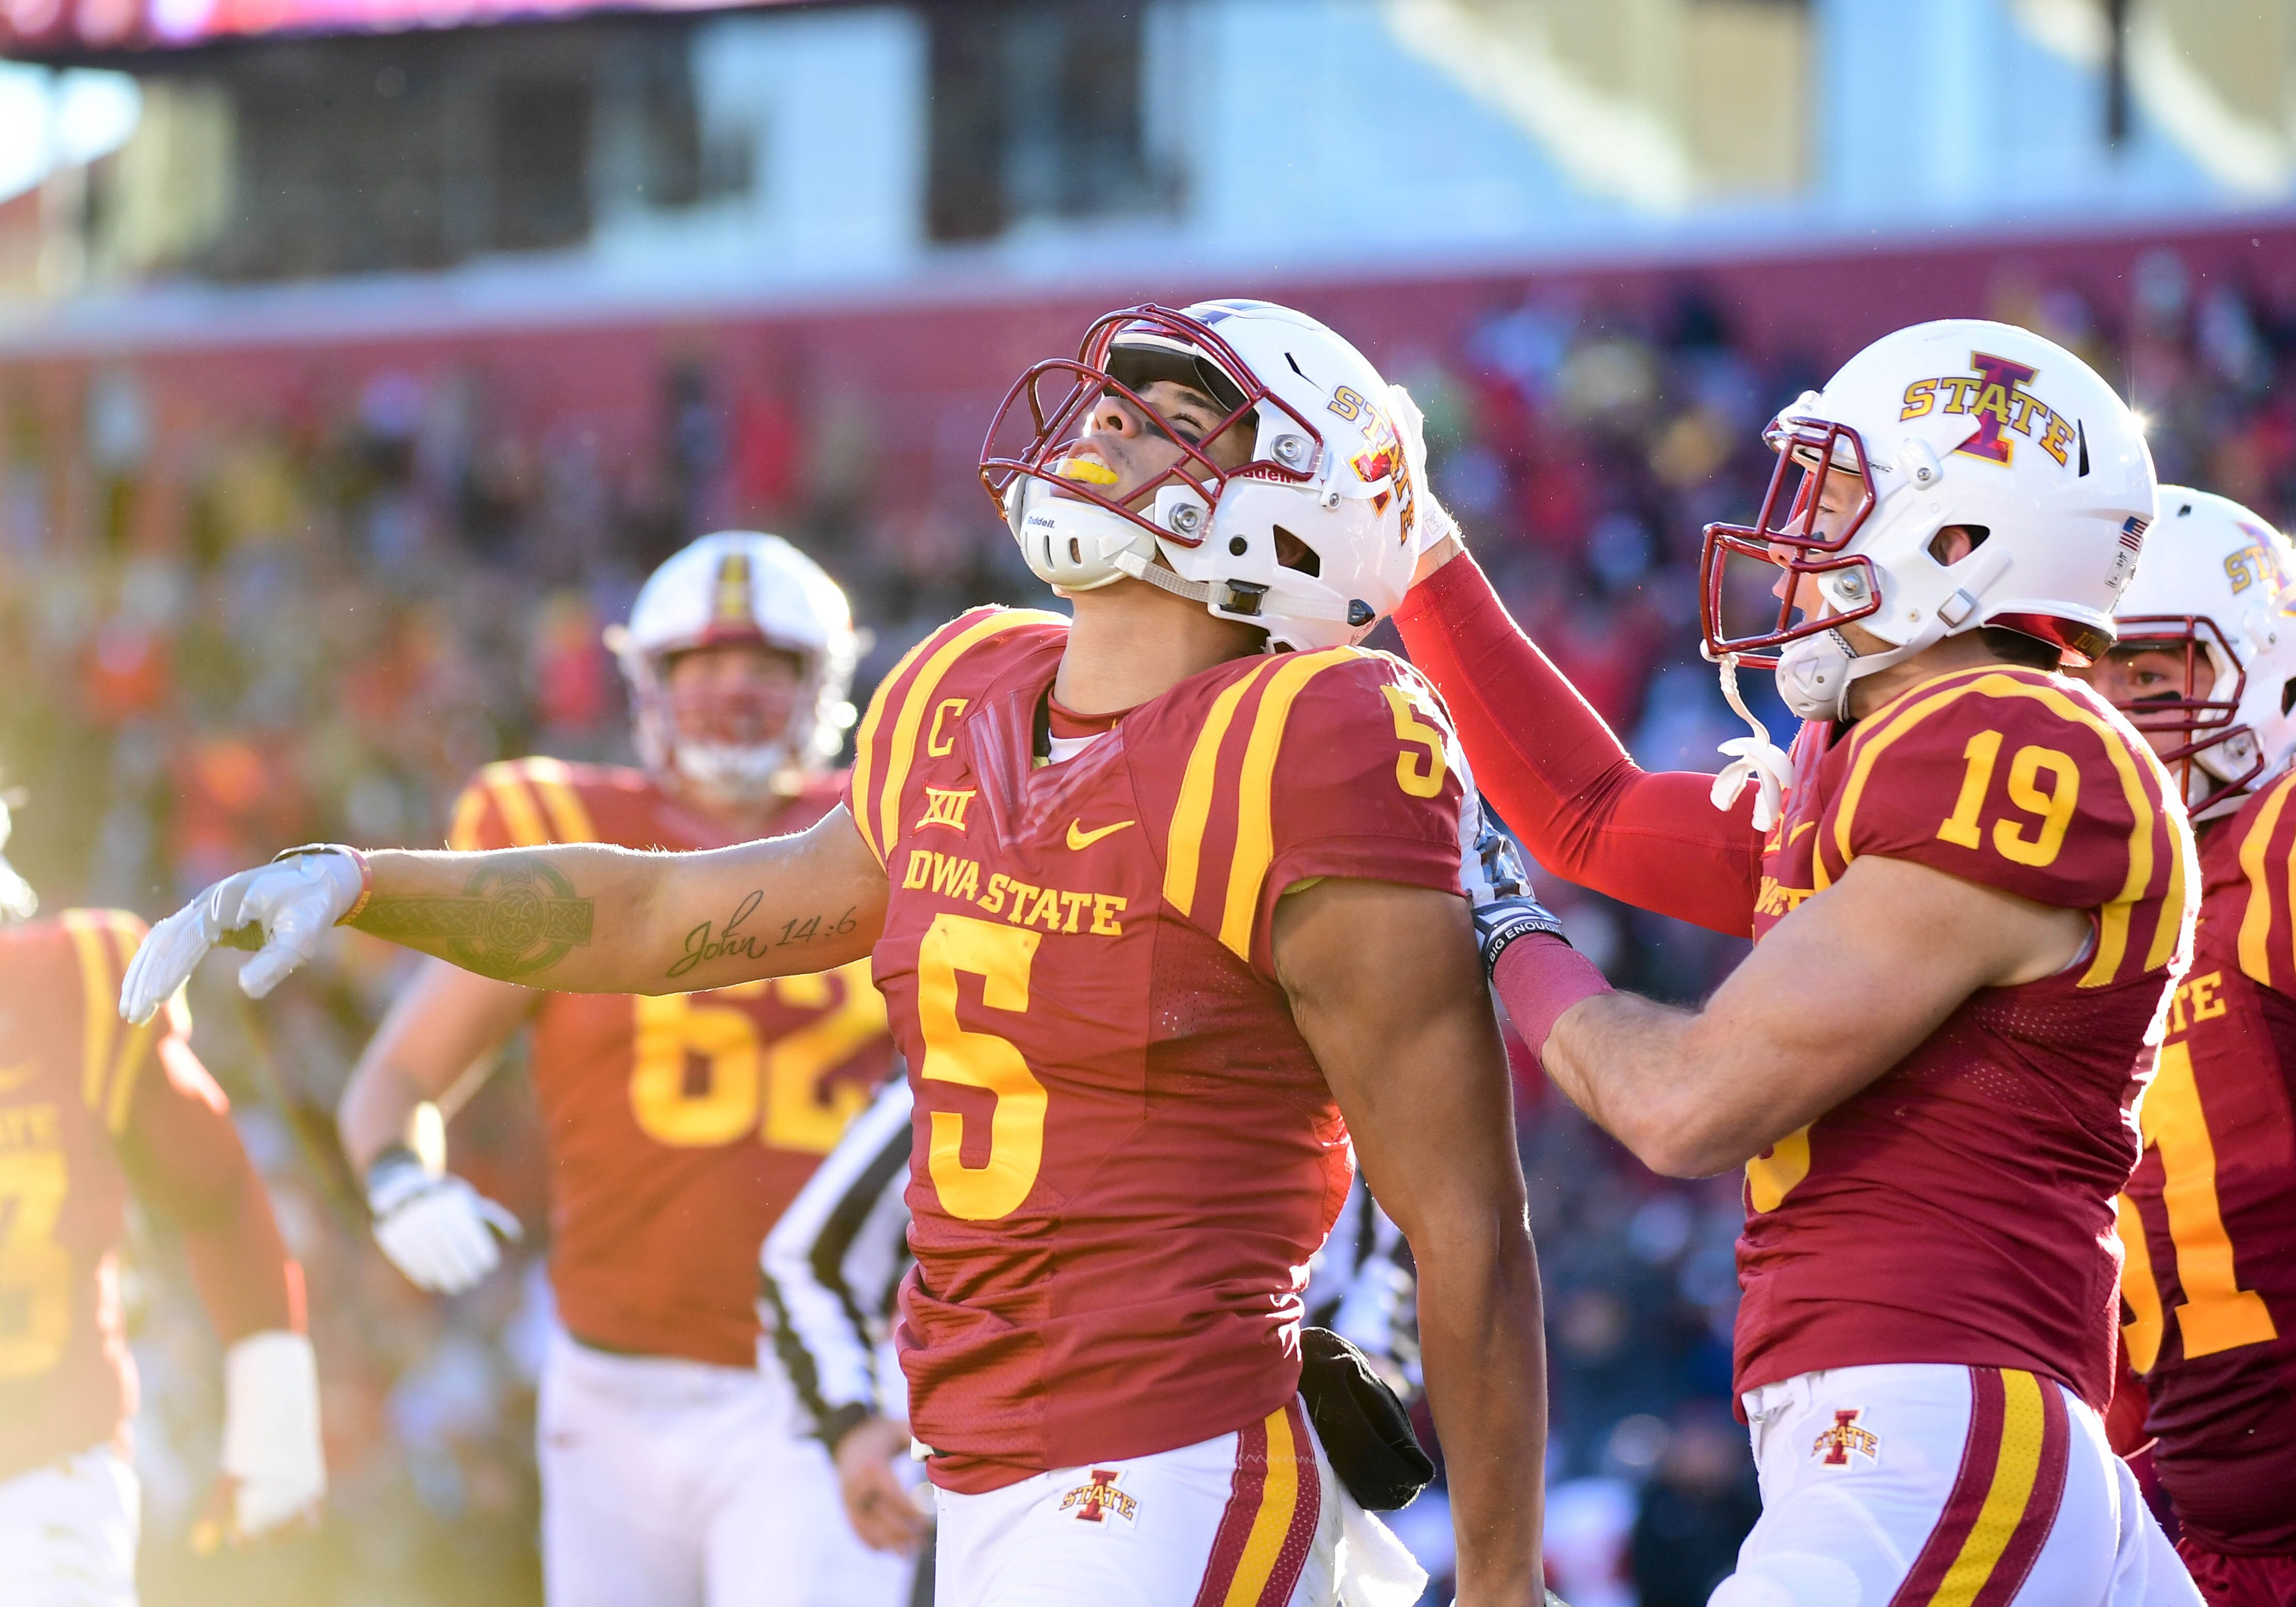 Iowa State's Allen Lazard makes incredible late TD catch ...